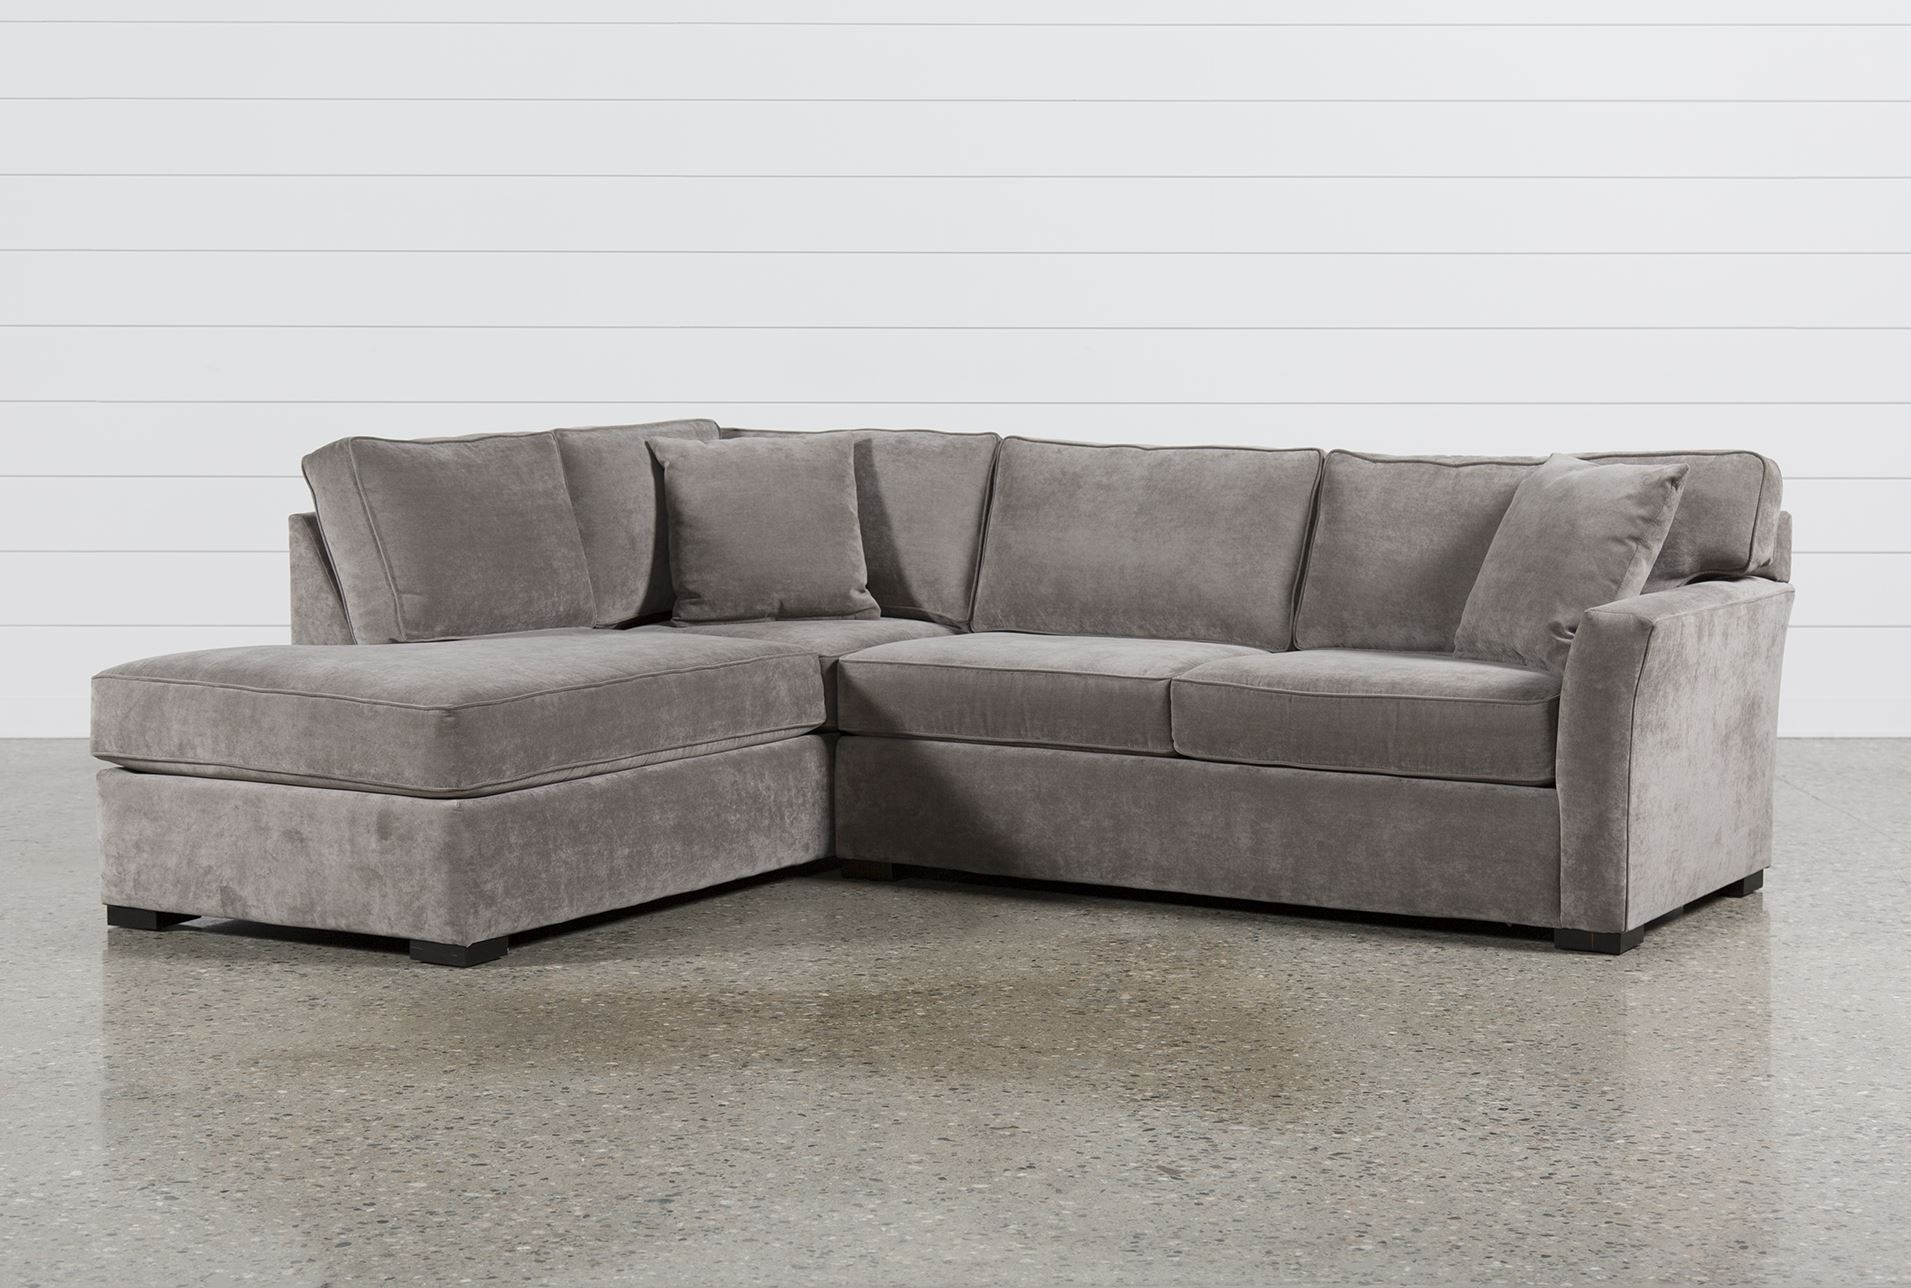 Aspen 2 Piece Sectional W/laf Chaise, Grey, Sofas | Aspen And Apartments within Avery 2 Piece Sectionals With Raf Armless Chaise (Image 3 of 30)